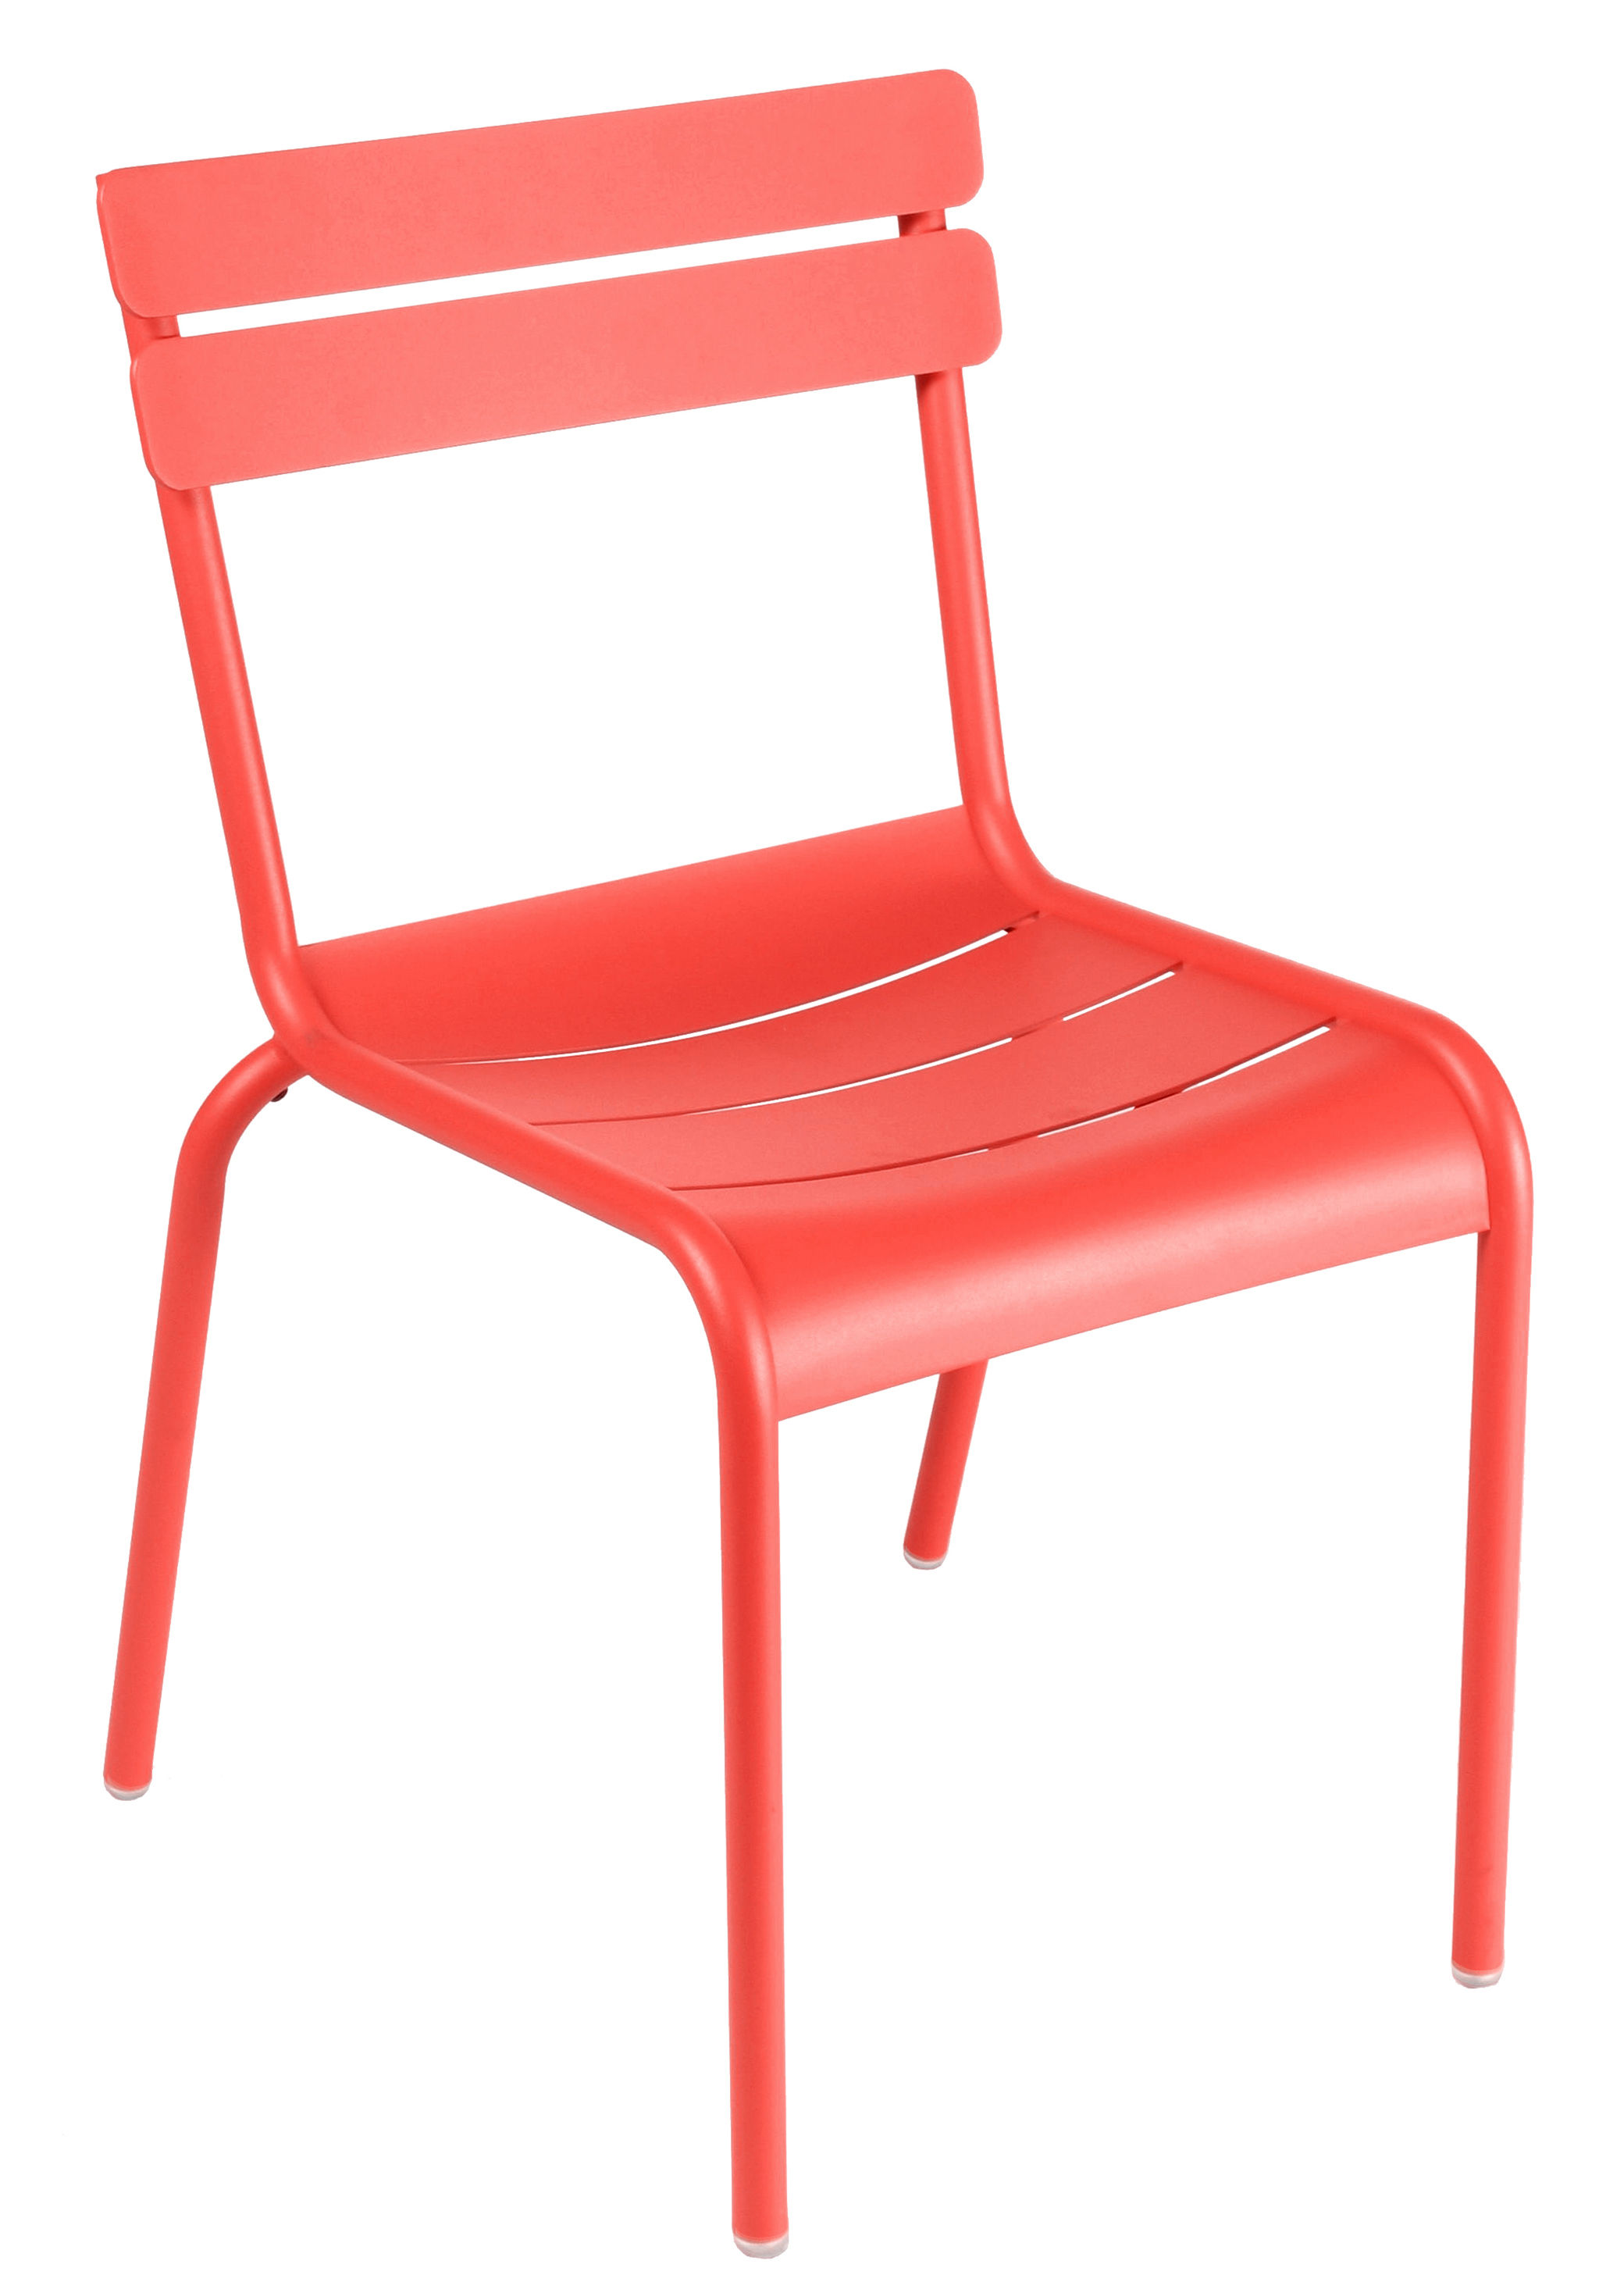 Life Style - Luxembourg Kid Children's chair by Fermob - Nasturtium - Lacquered aluminium